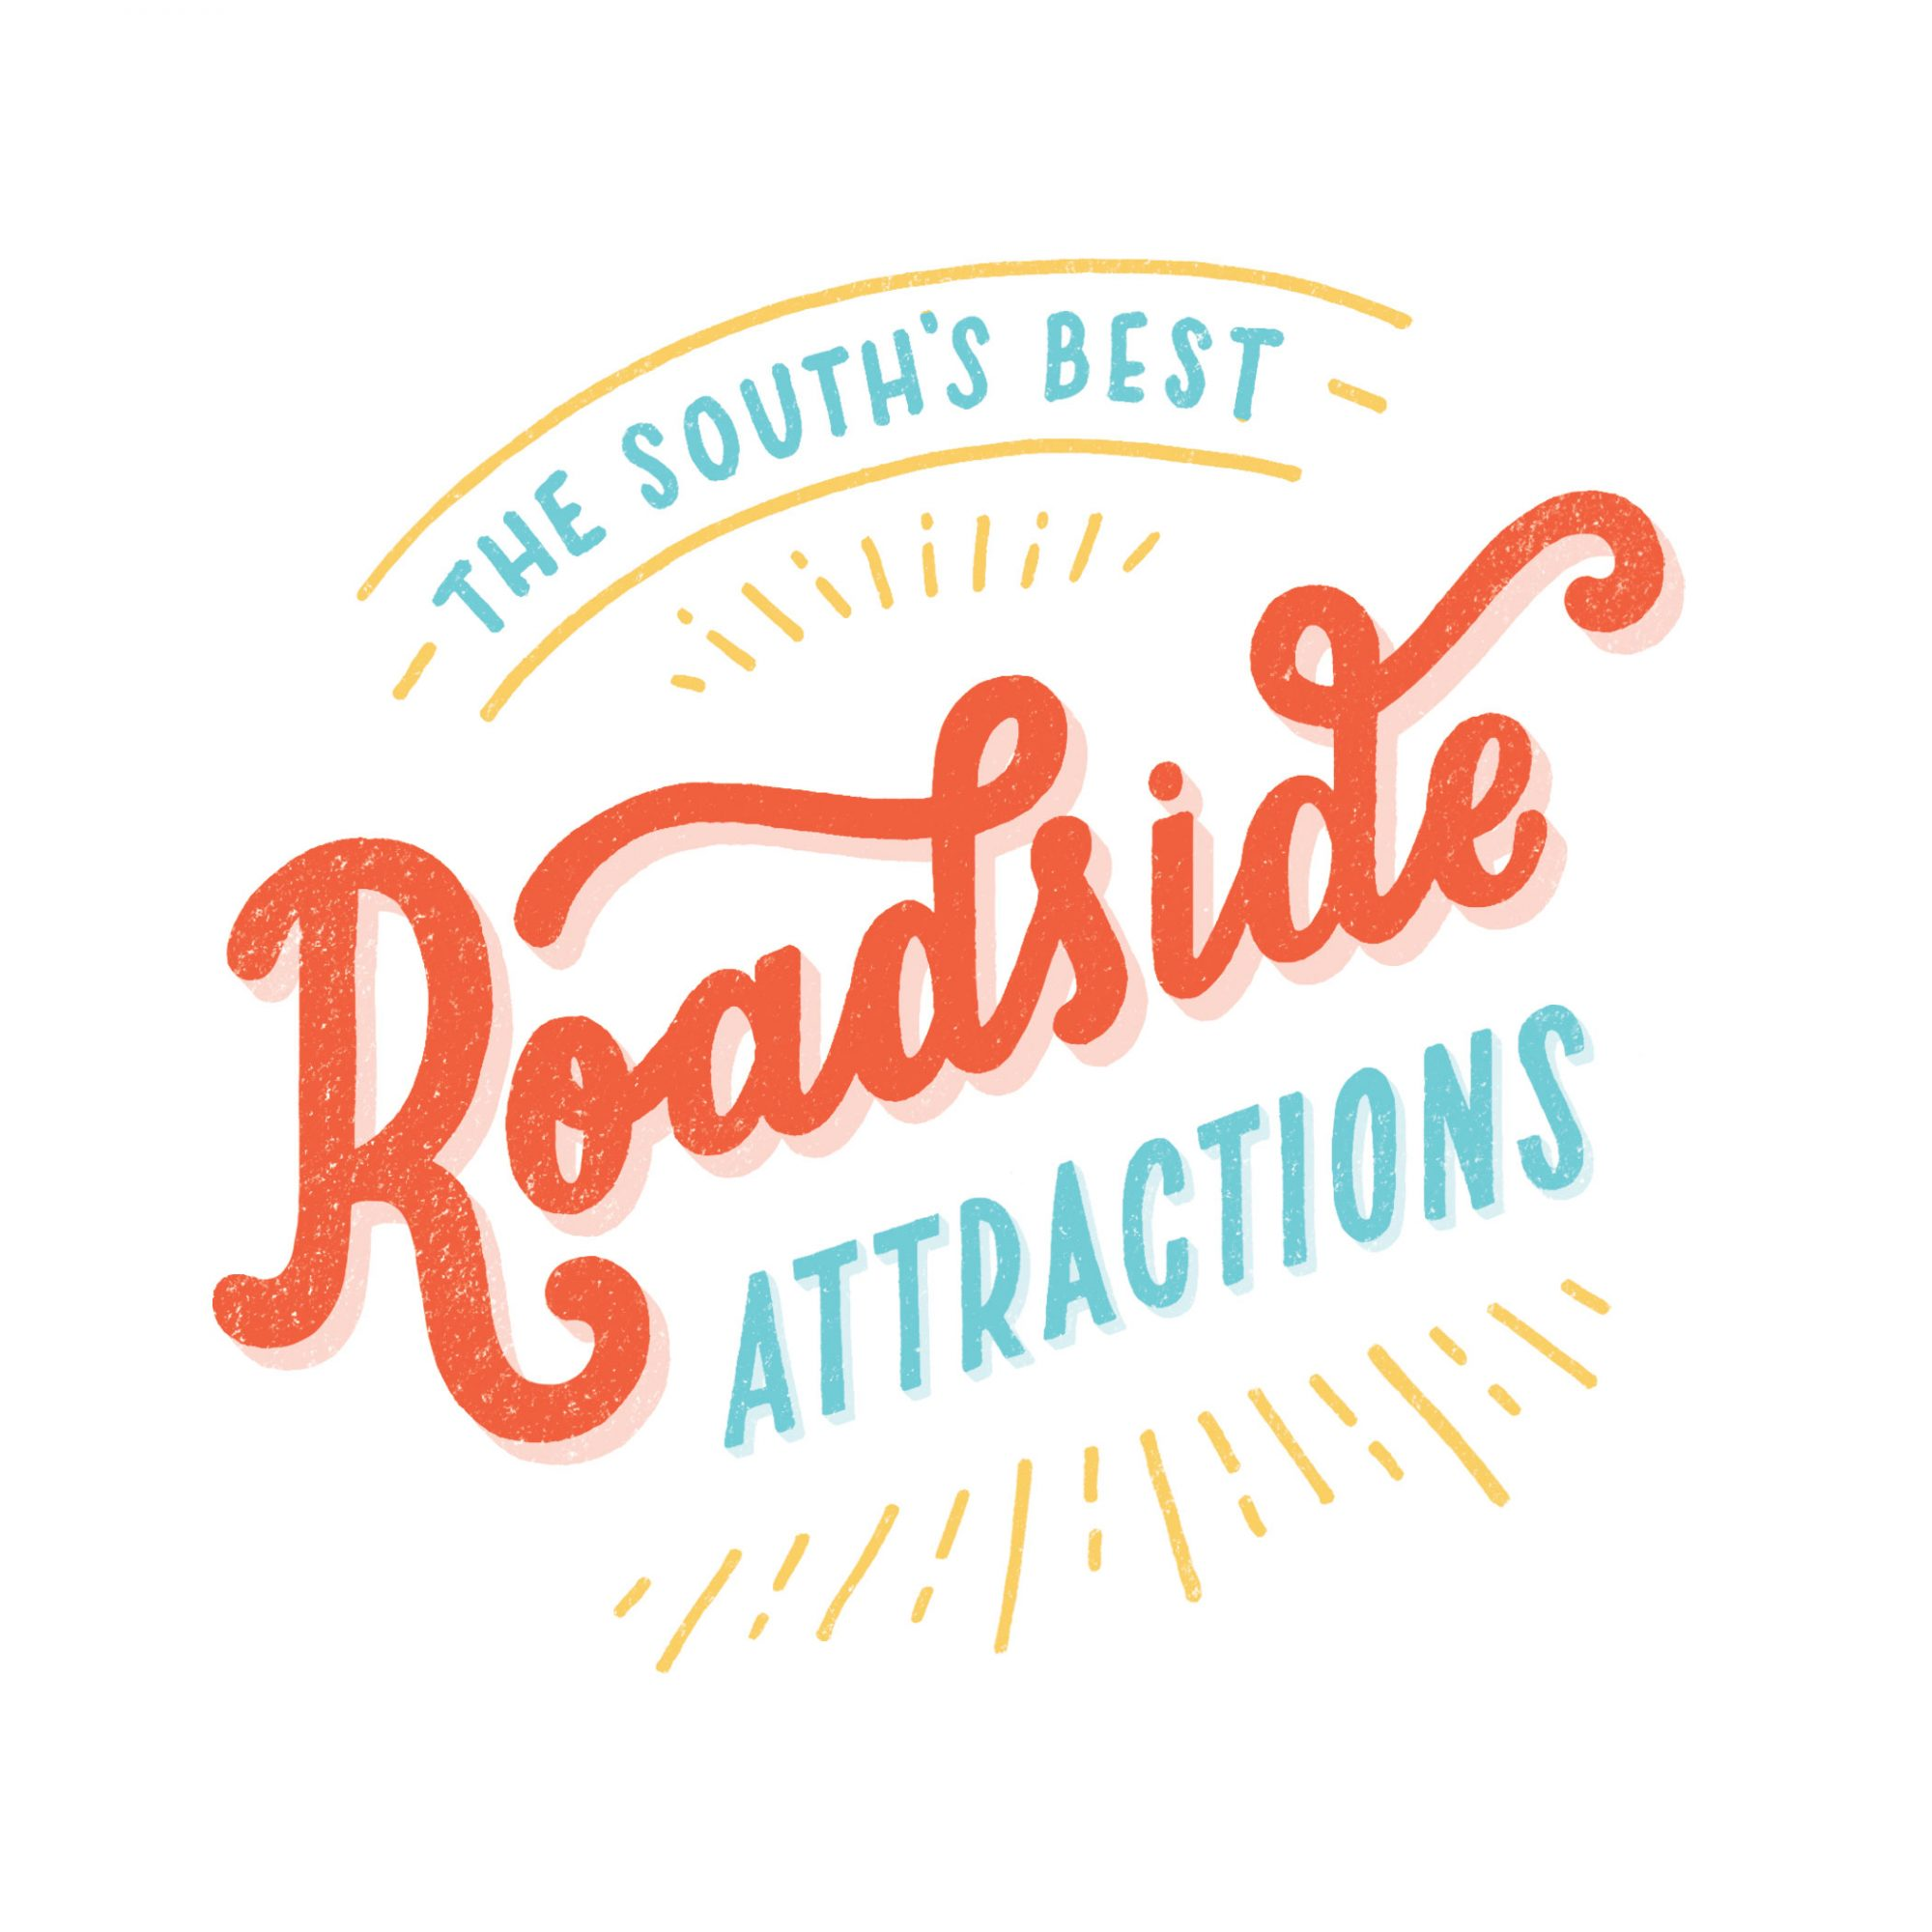 The South's Best Roadside Attractions